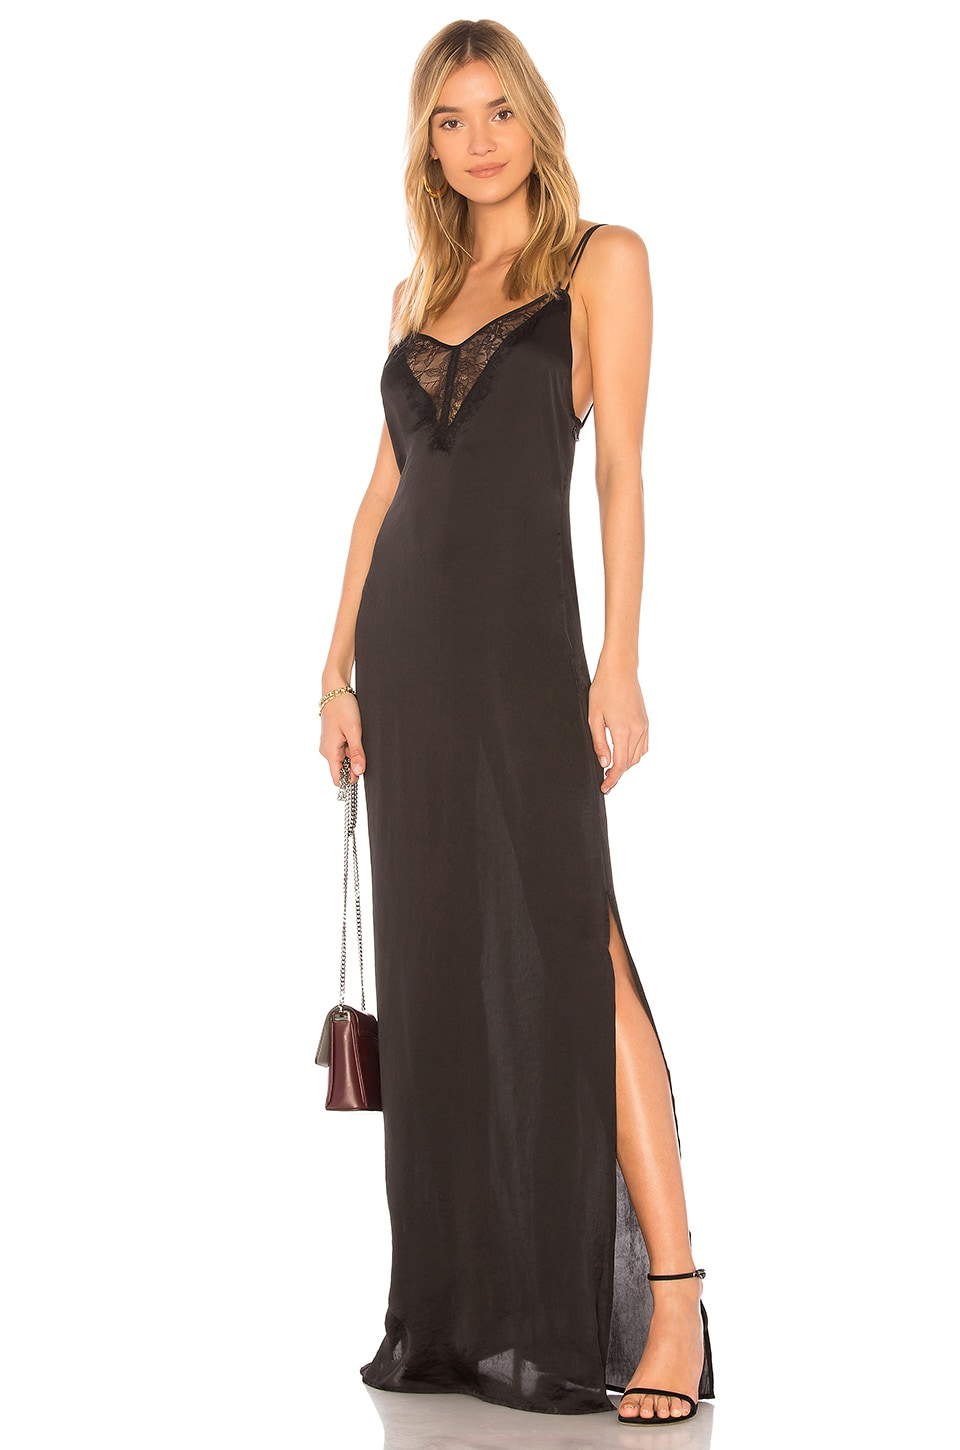 Capulet Marisa Maxi Dress in Black